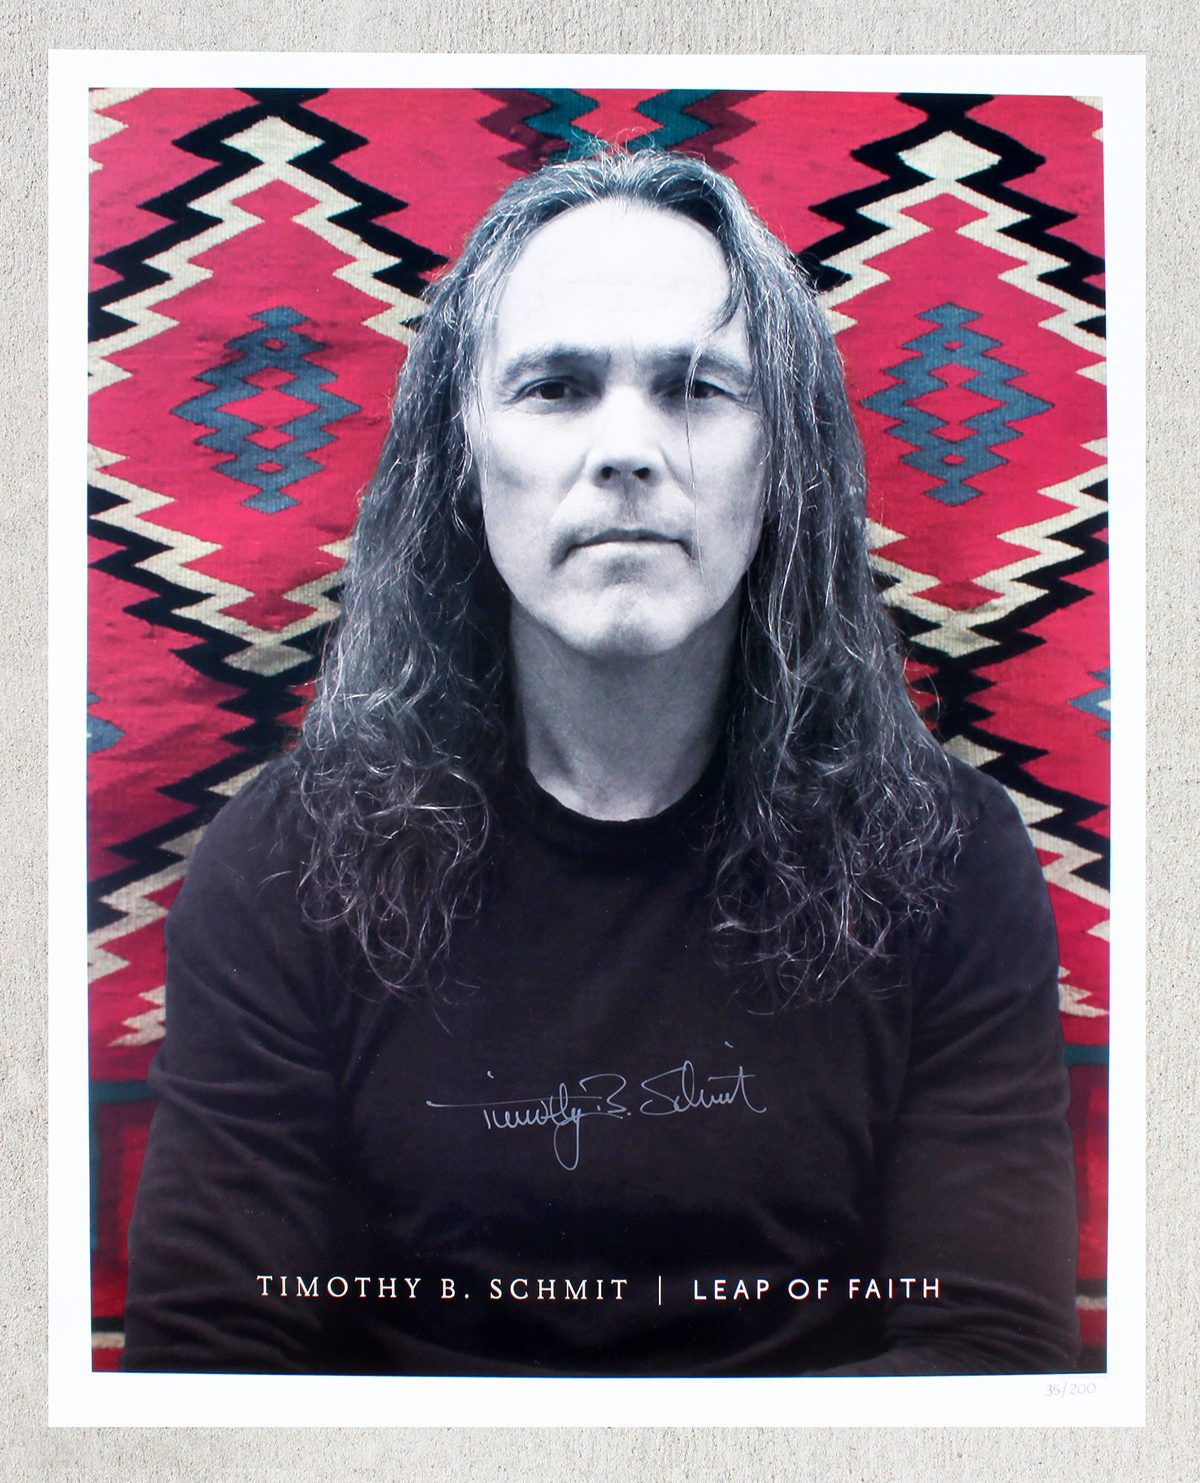 Timothy B Schmit - Tour Book - Leap of Faith #2